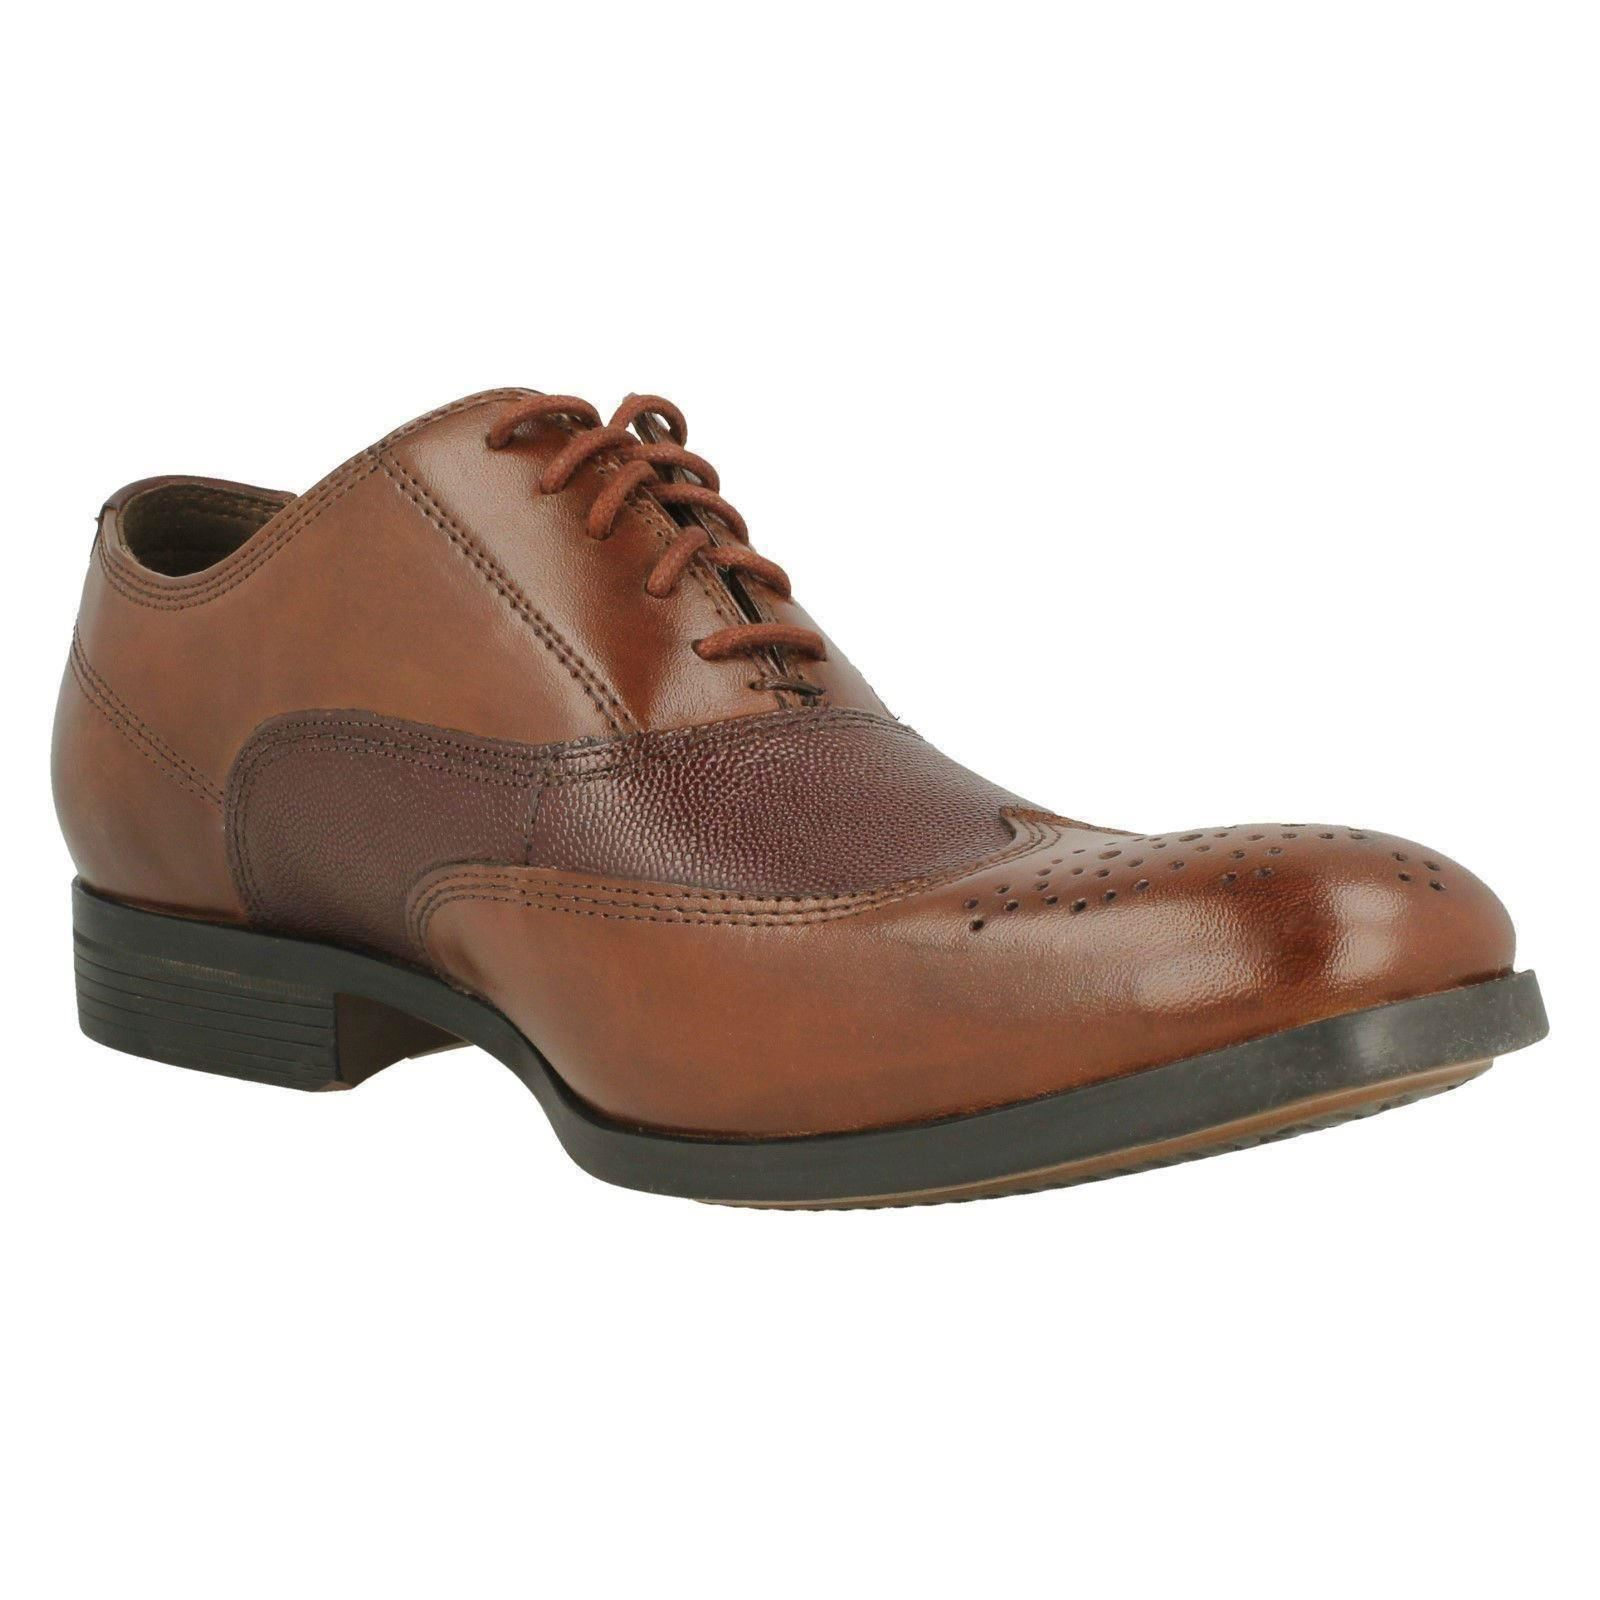 Mens Clarks Formal - Lace Up Brogues - Formal Gilmore Wing 7f98b8